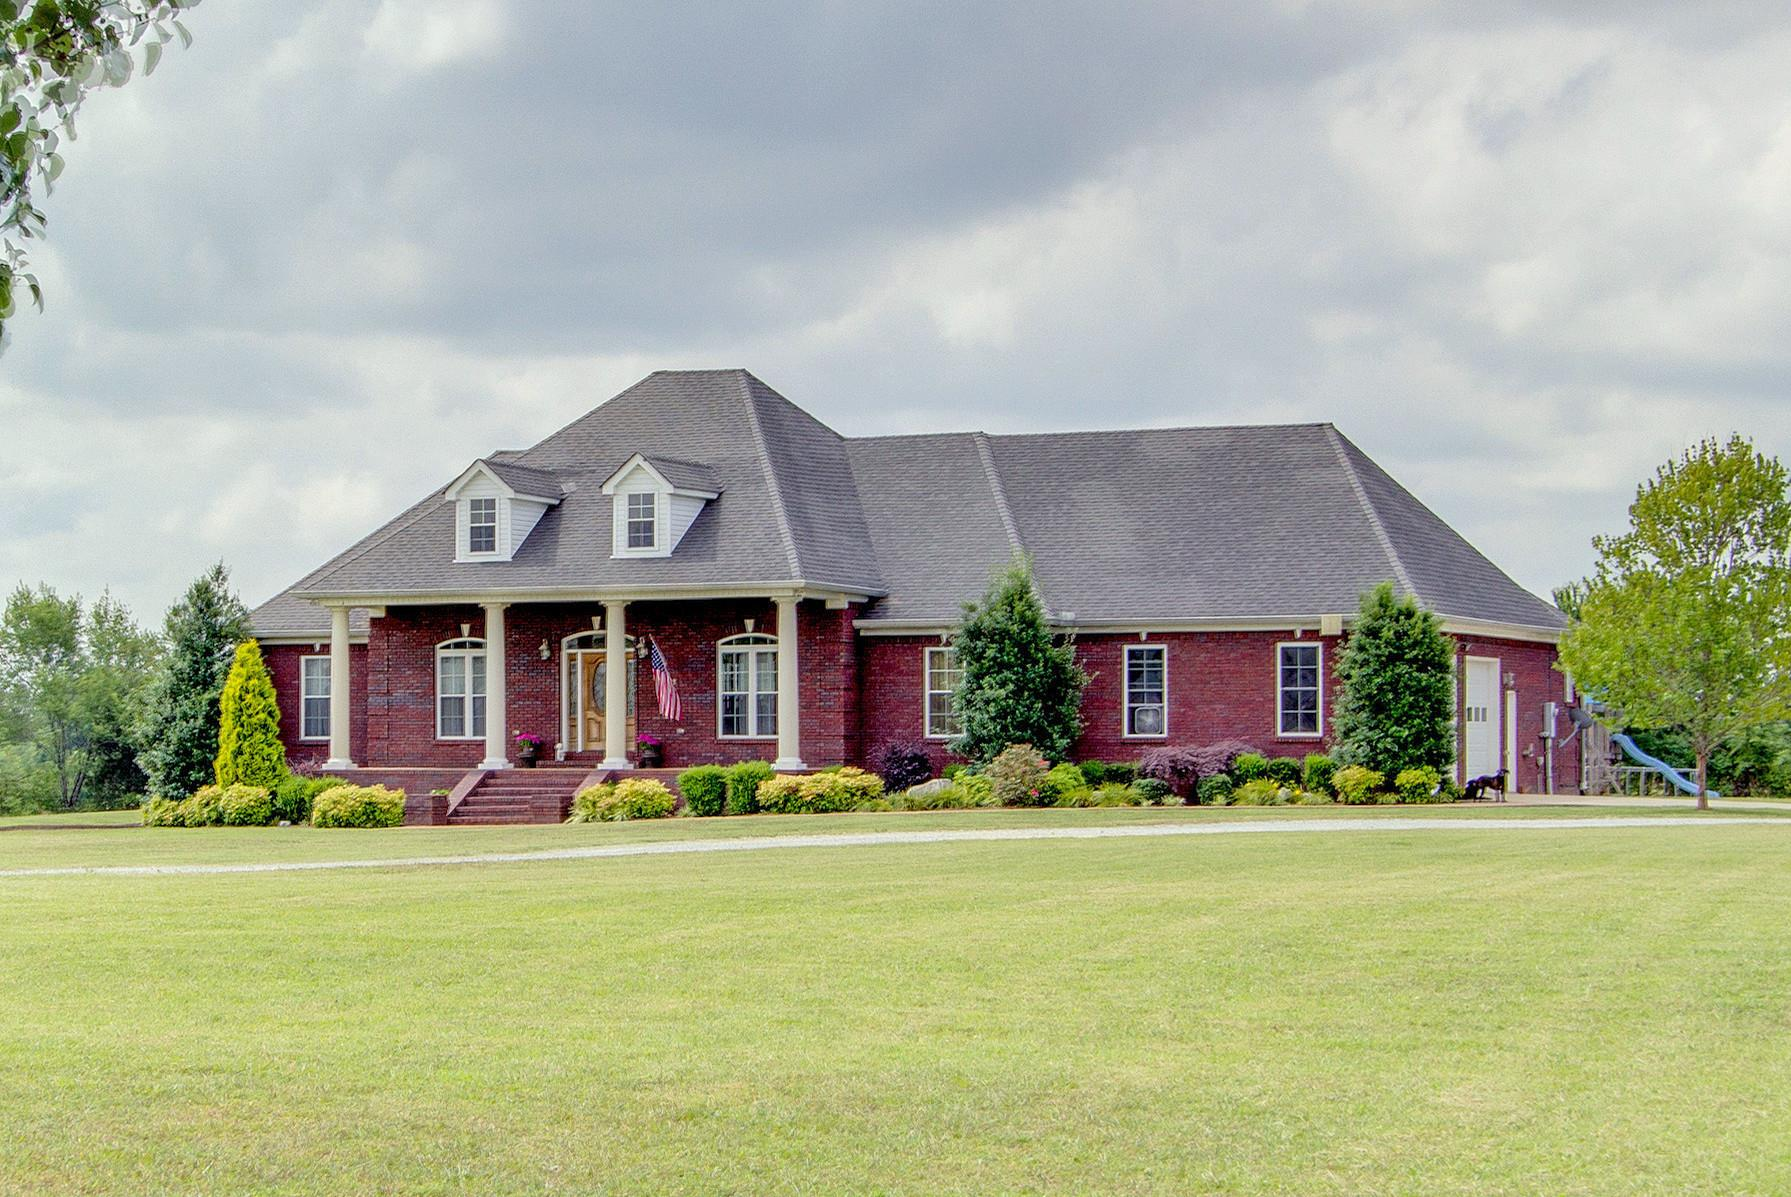 Image of  for Sale near Hohenwald, Tennessee, in Lewis County: 4.82 acres